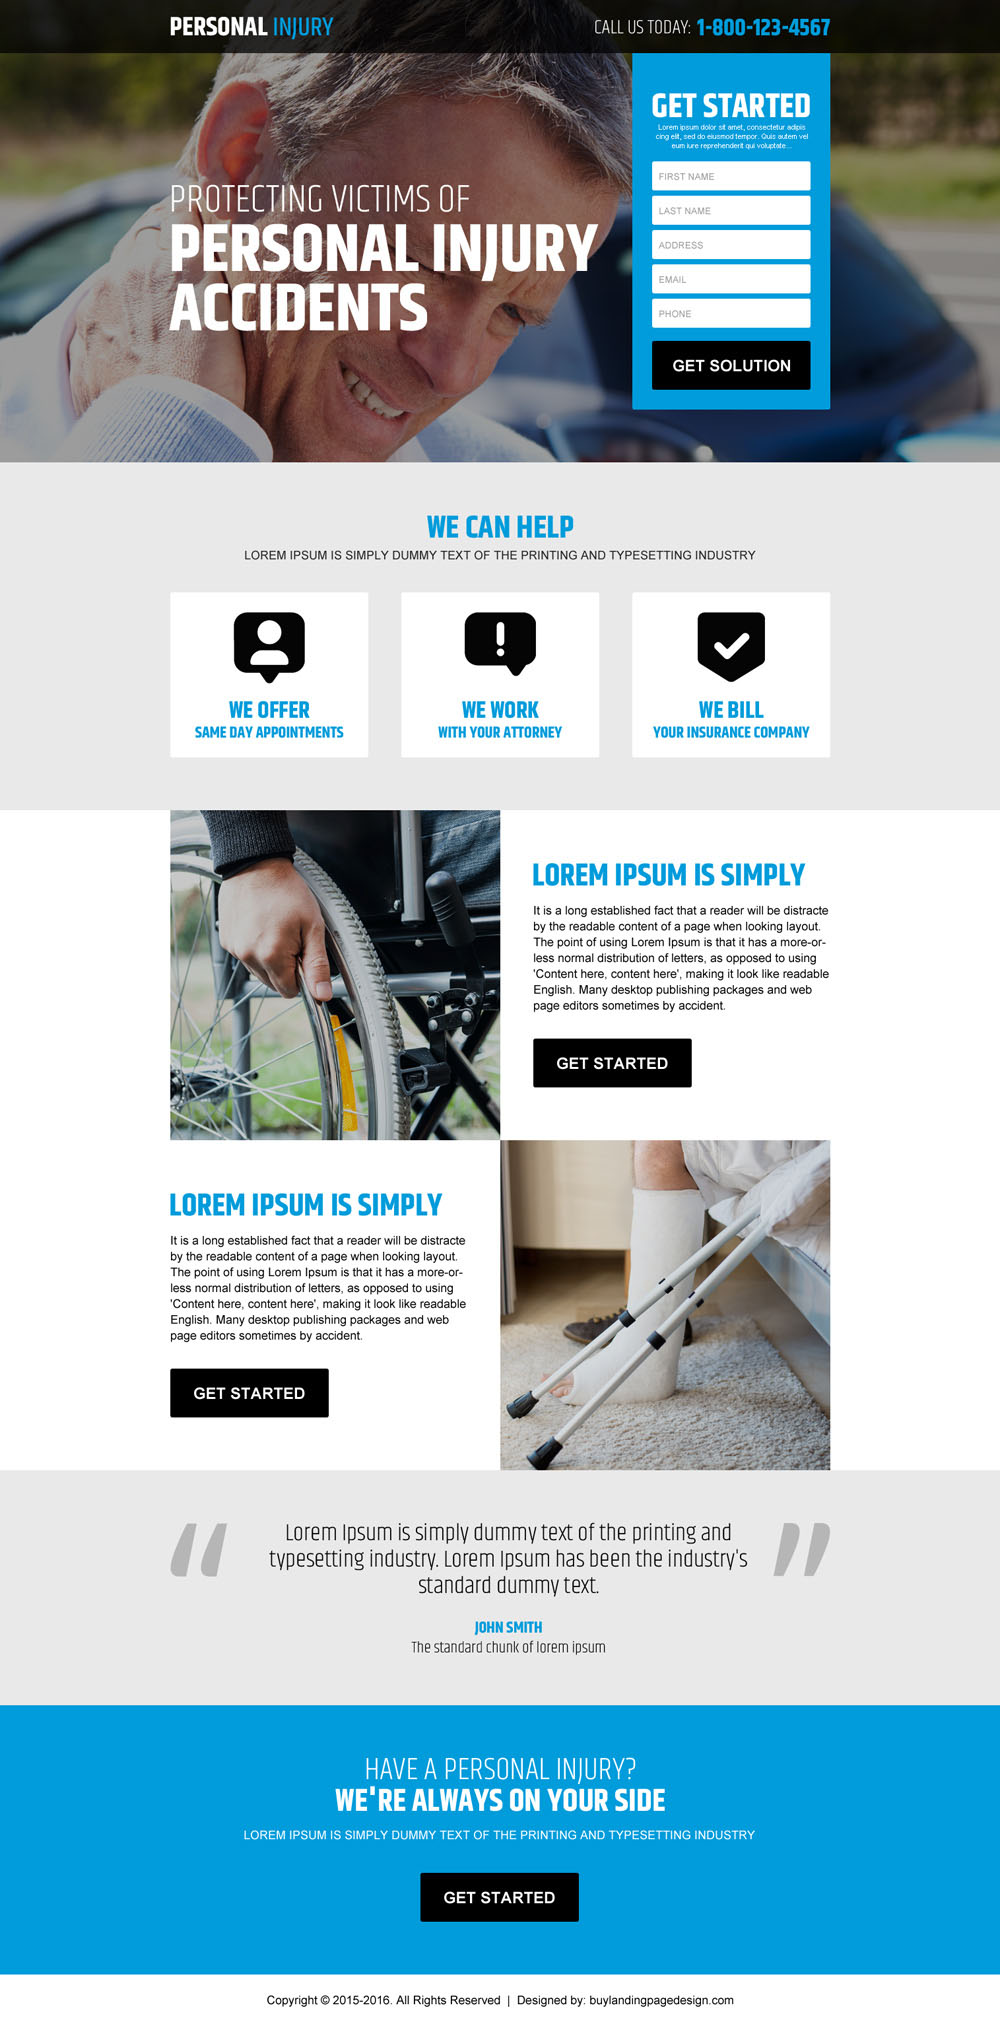 personal-injury-accidents-claim-lead-capture-landing-page-design-003